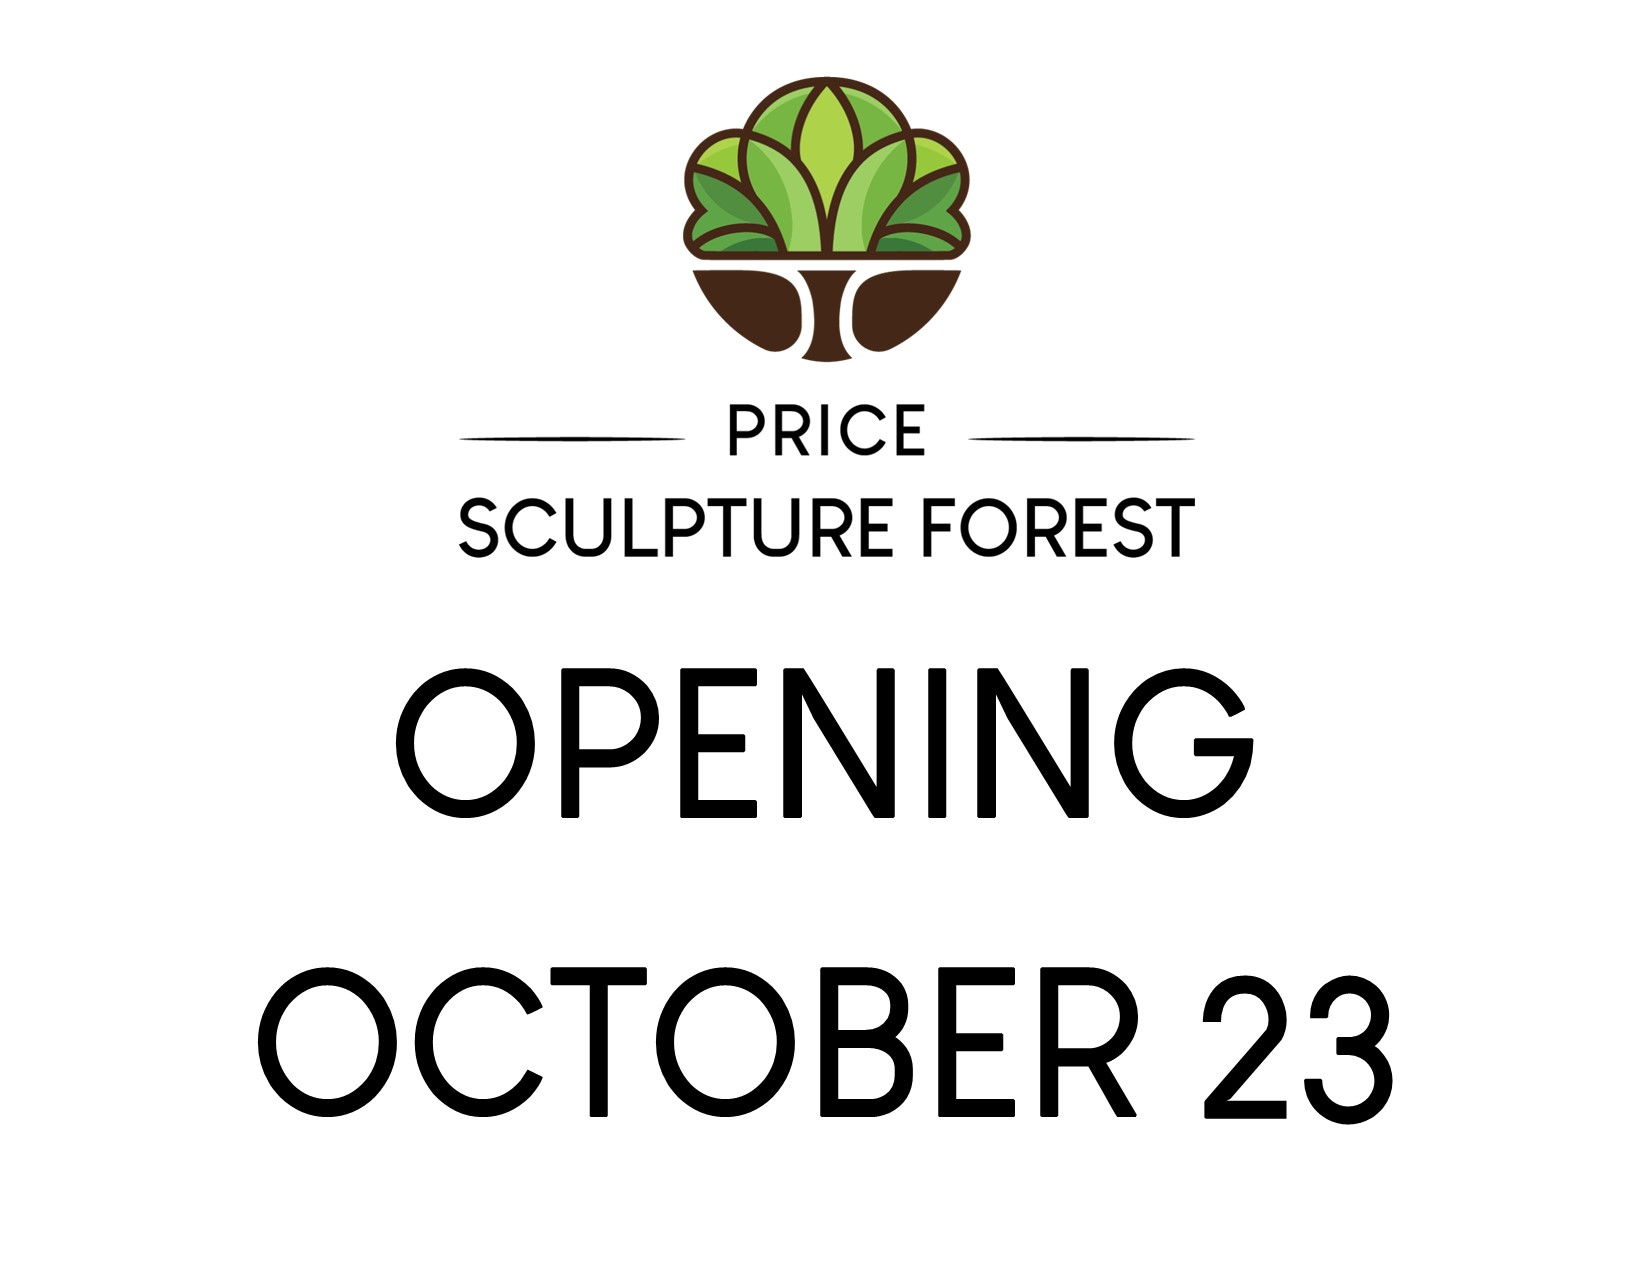 Price Sculpture Forest sculpture park in Coupeville on Whidbey Island opening October 23 2020